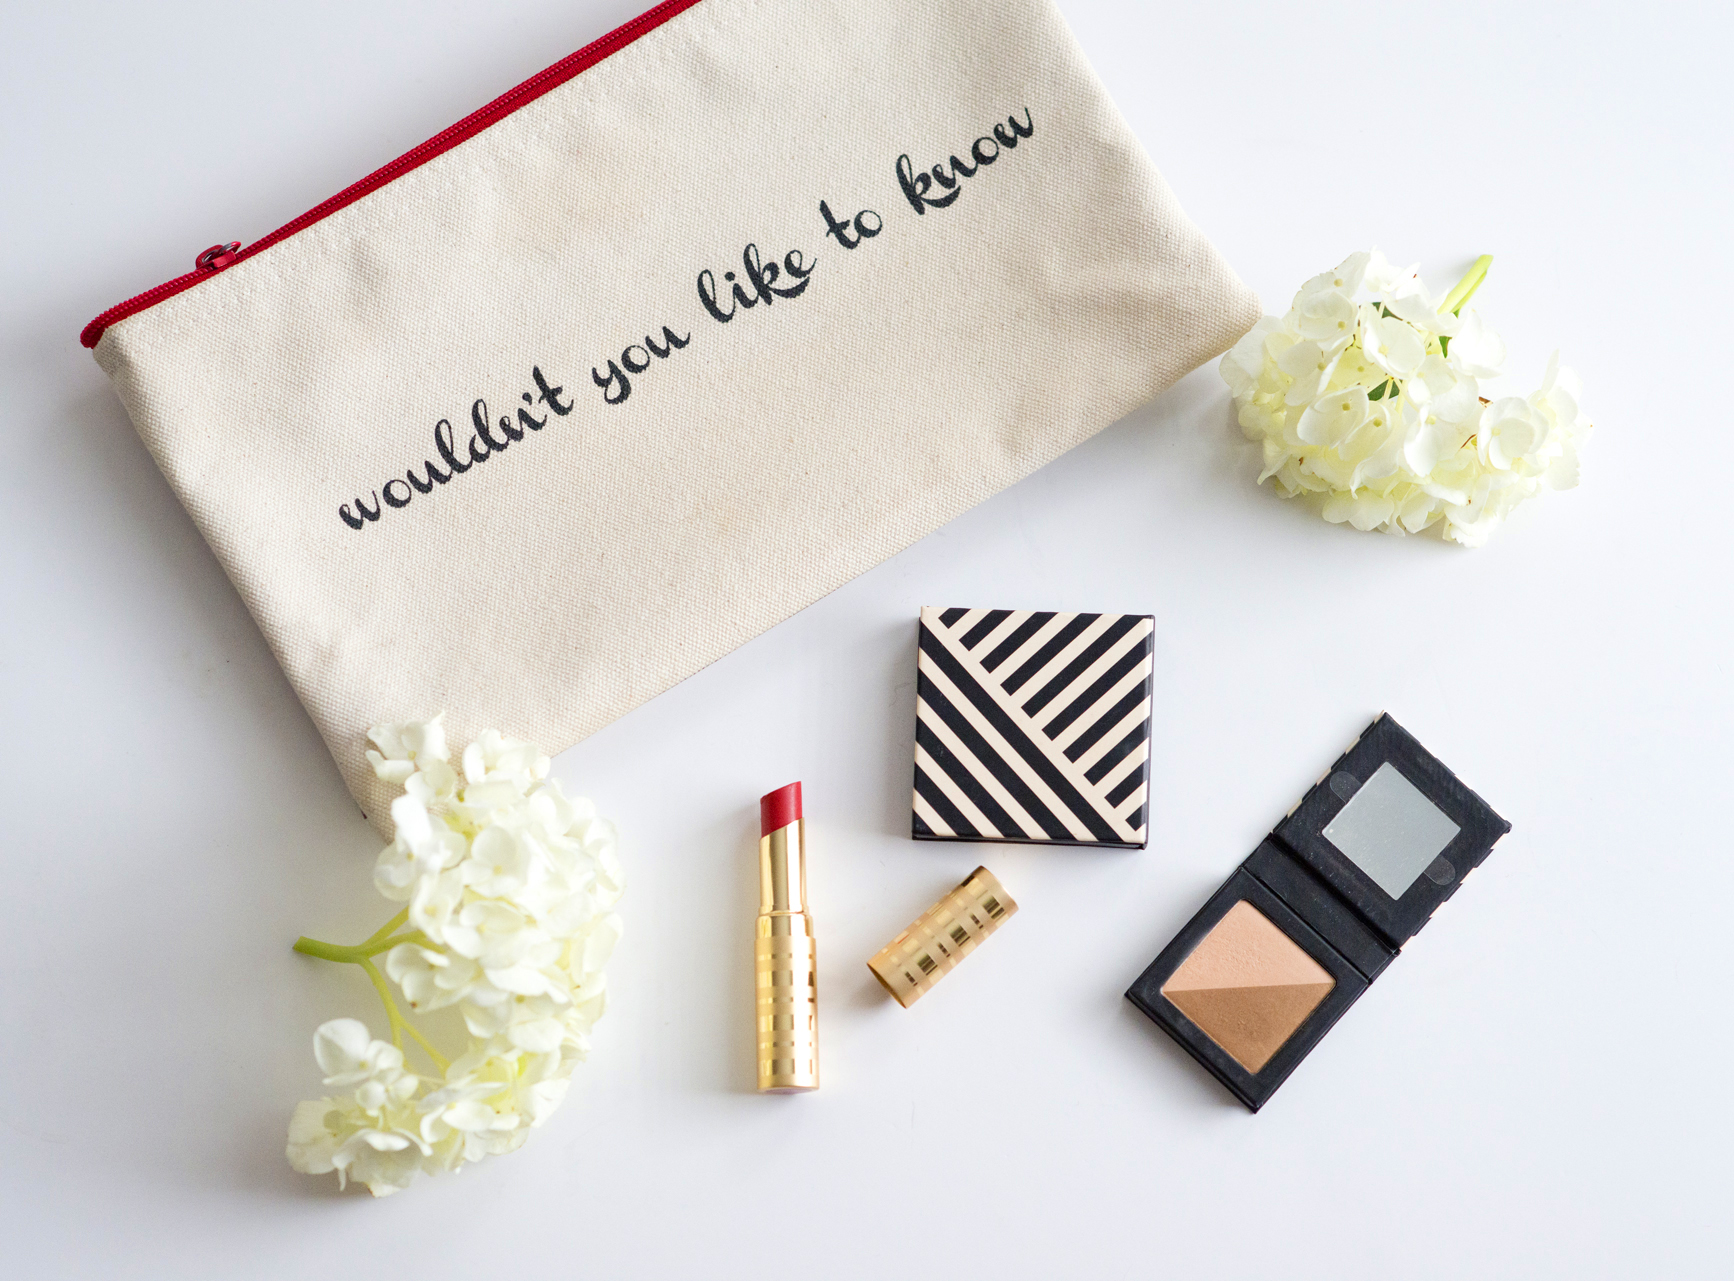 Beauty Counter's makeup and cute bag